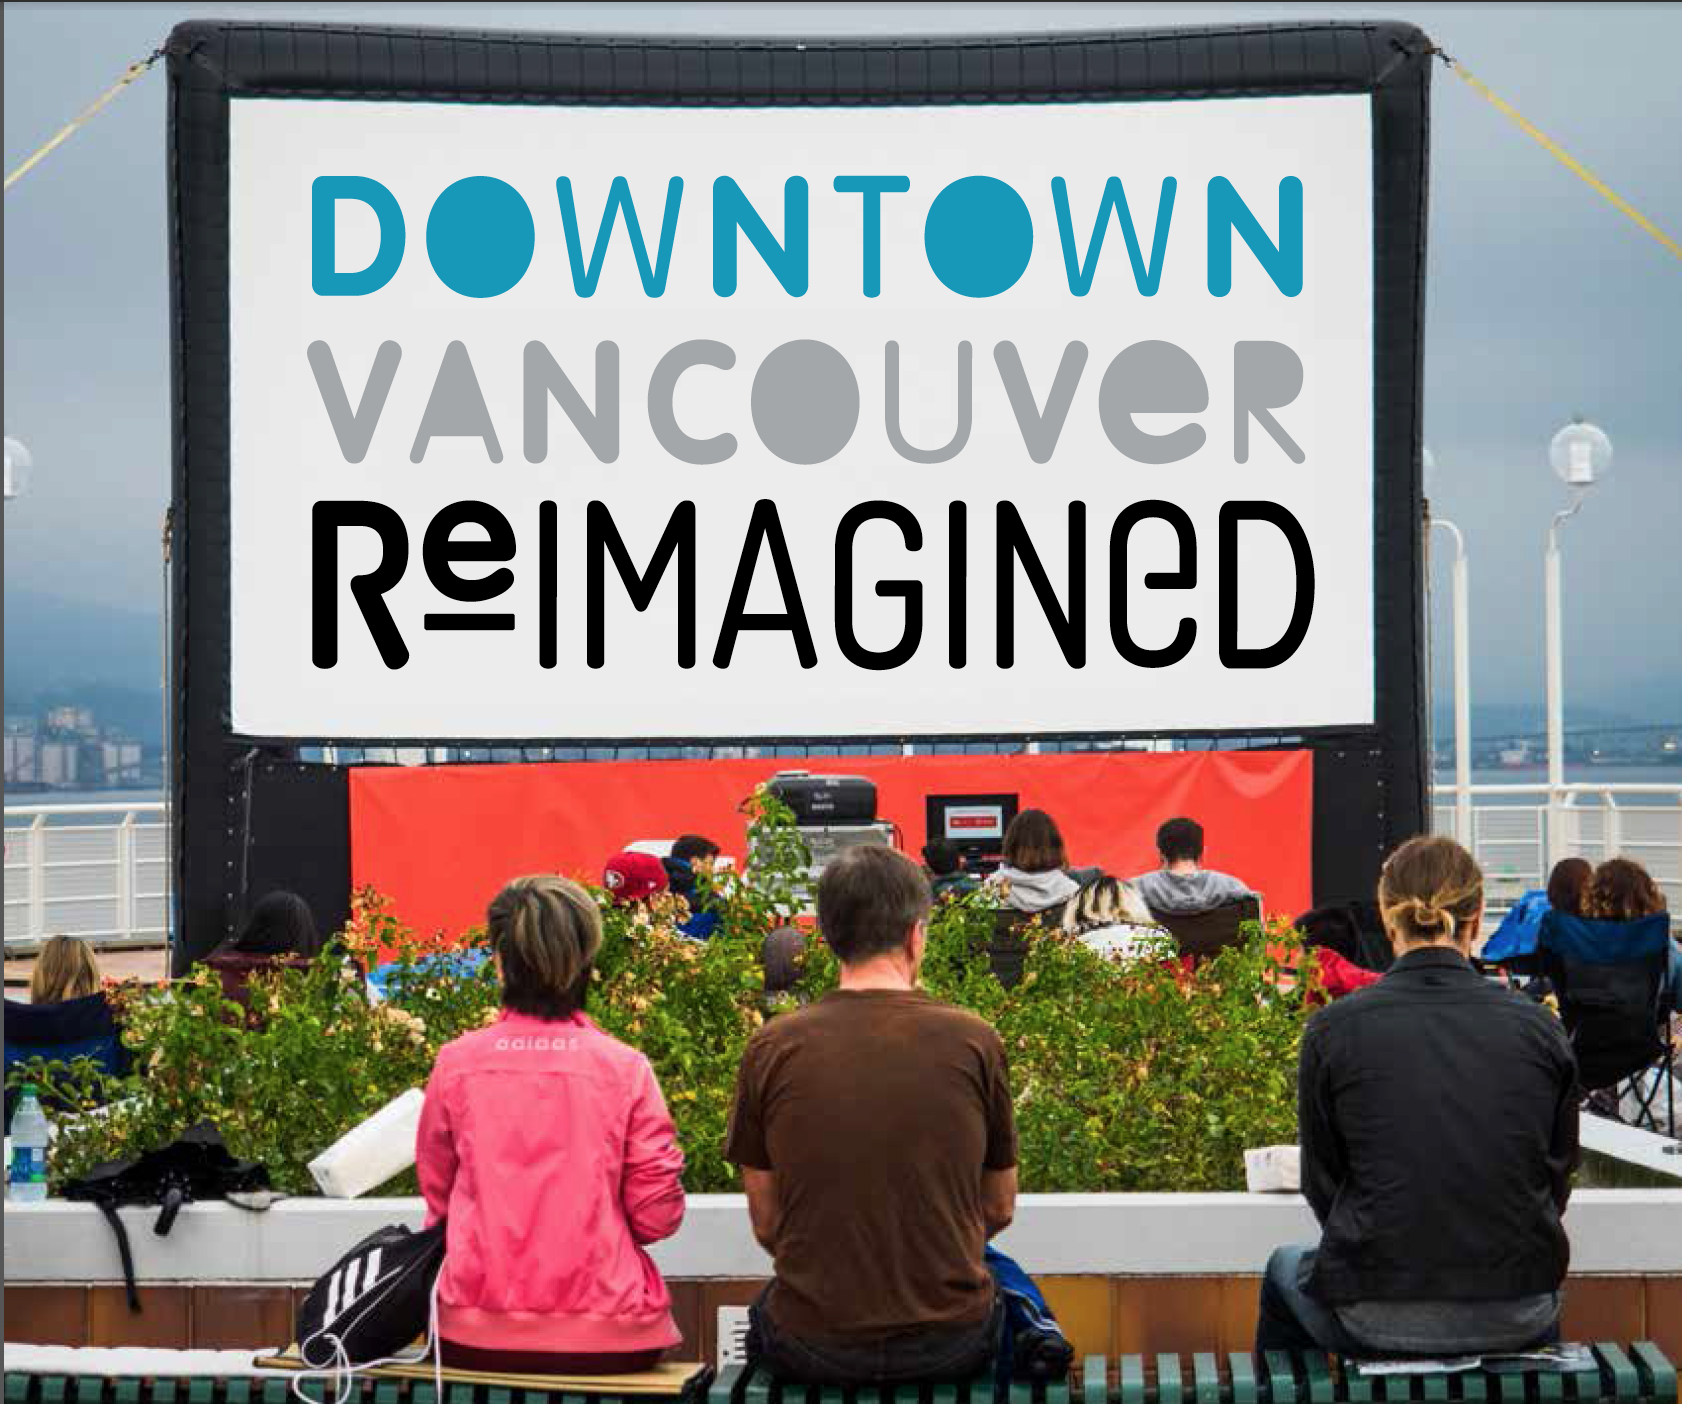 Downtown Vancouver Re-Imagined